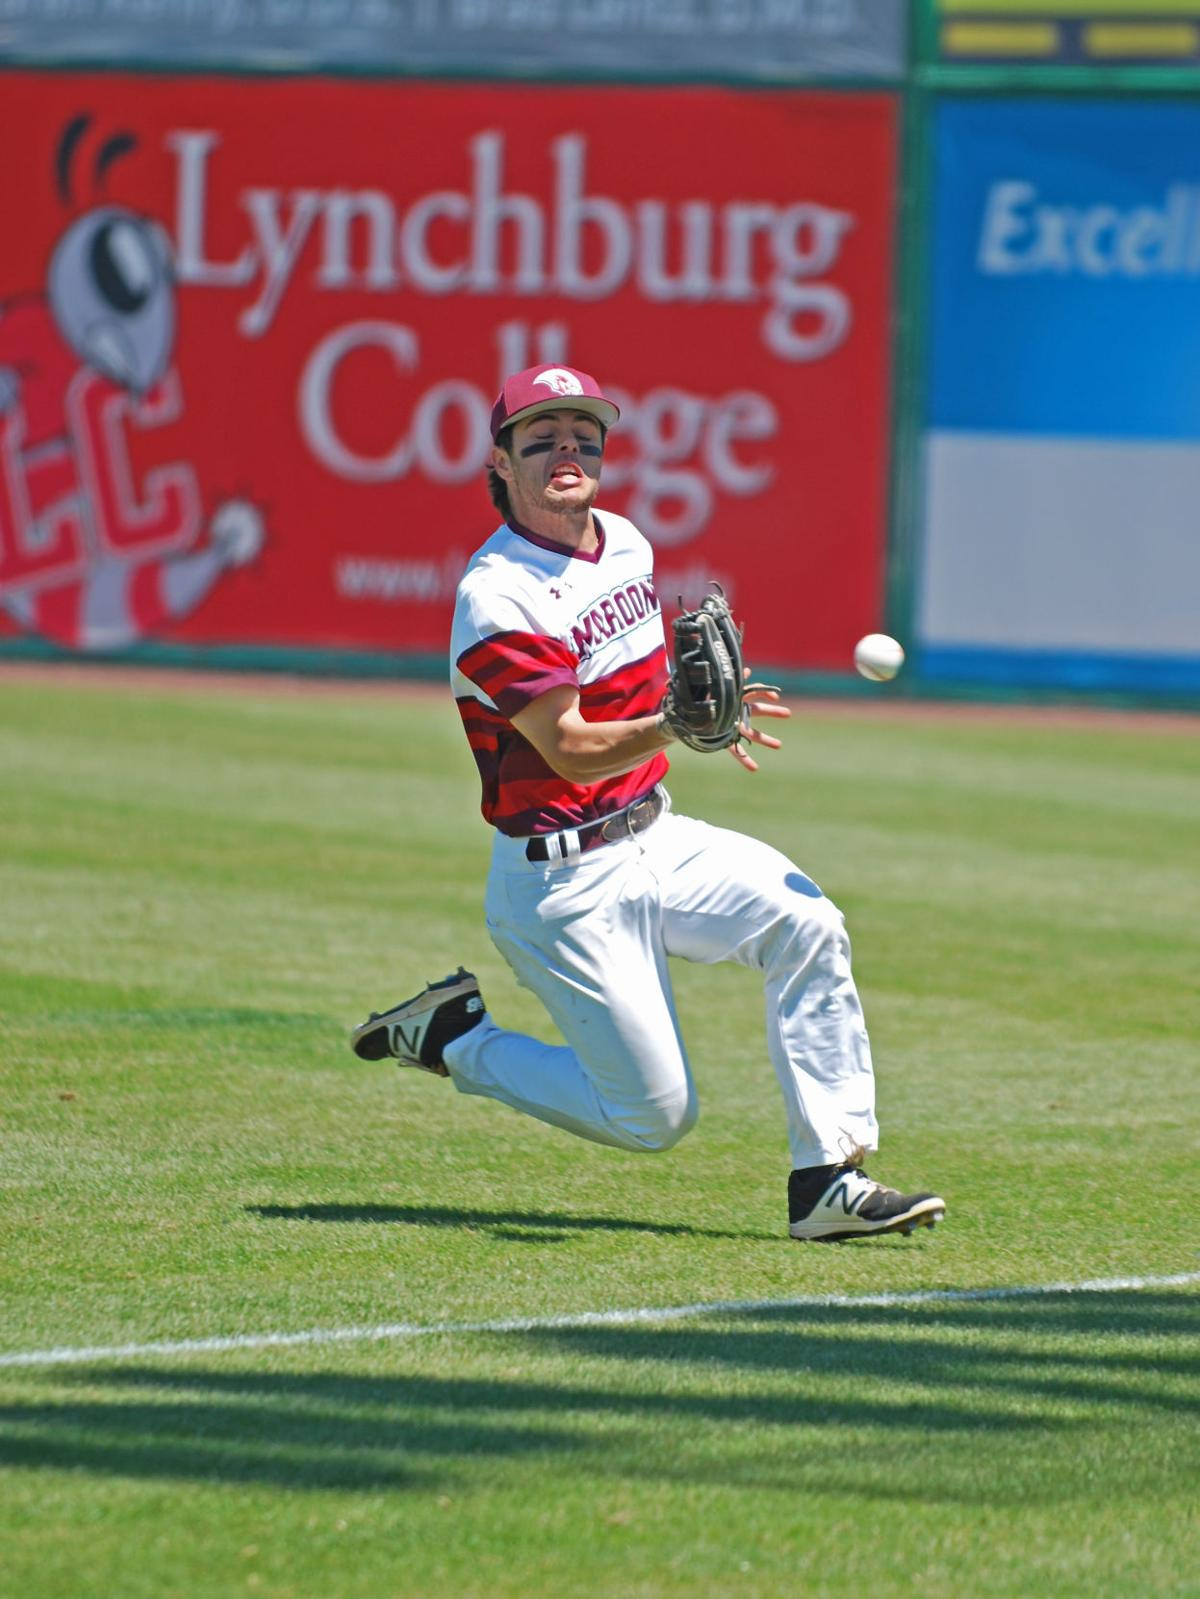 Roanoke College wins ODAC baseball title for first time ...